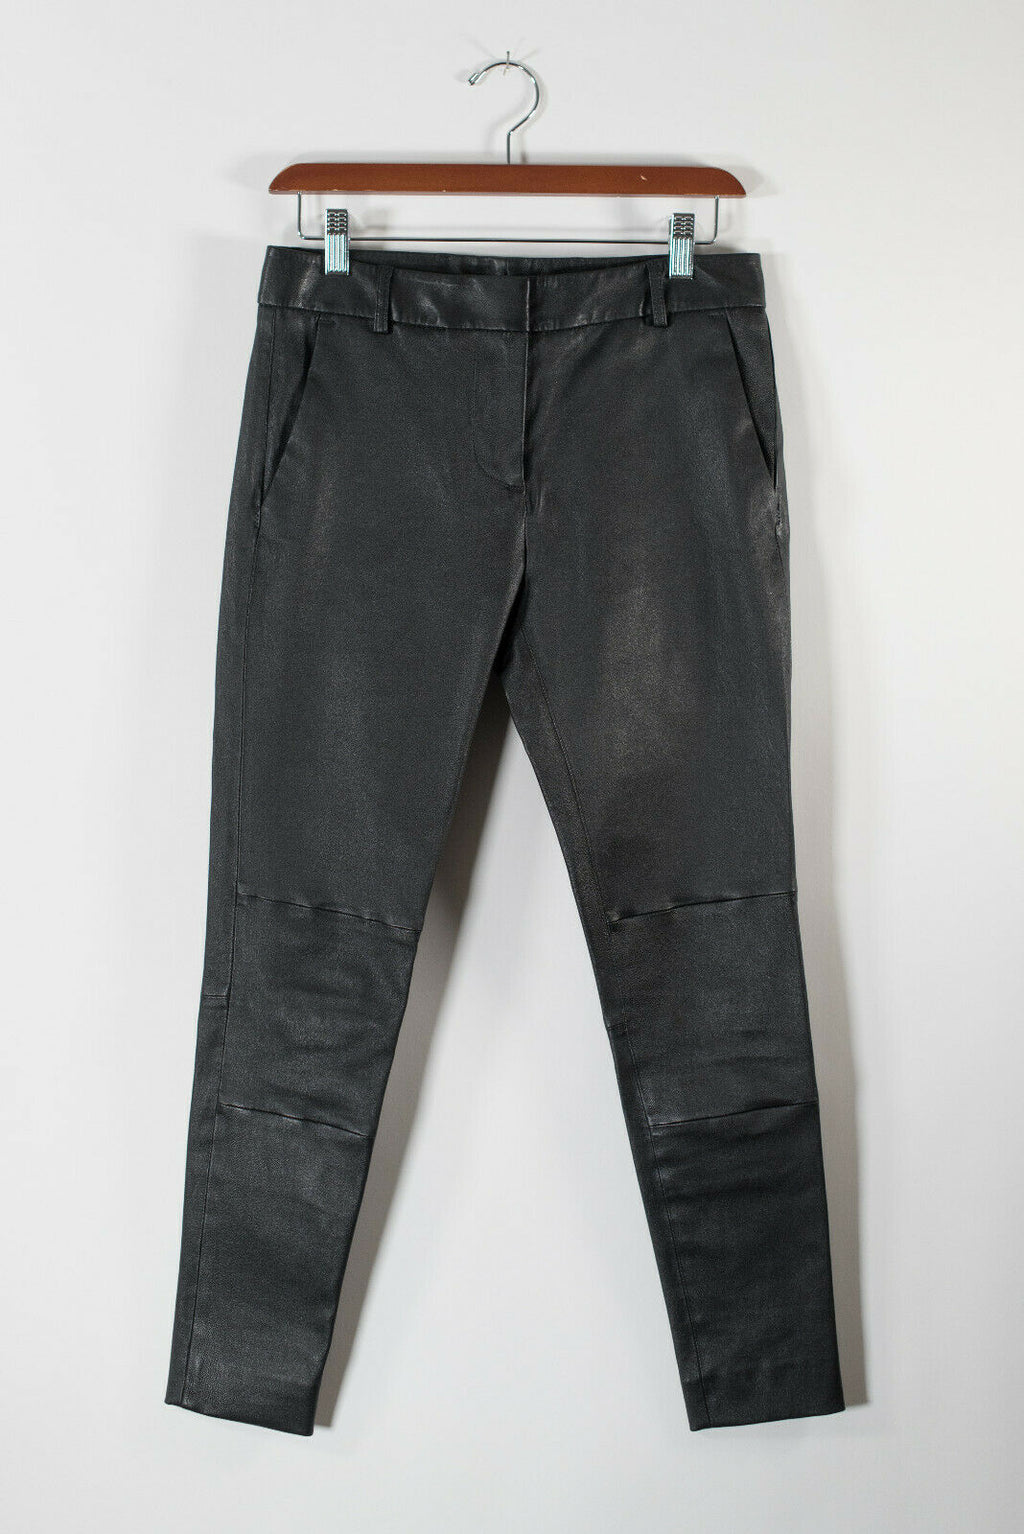 Hi Lo Womens 6 Small Black Trouser Stretch Leather Boyfriend Slim Pants NWT $699